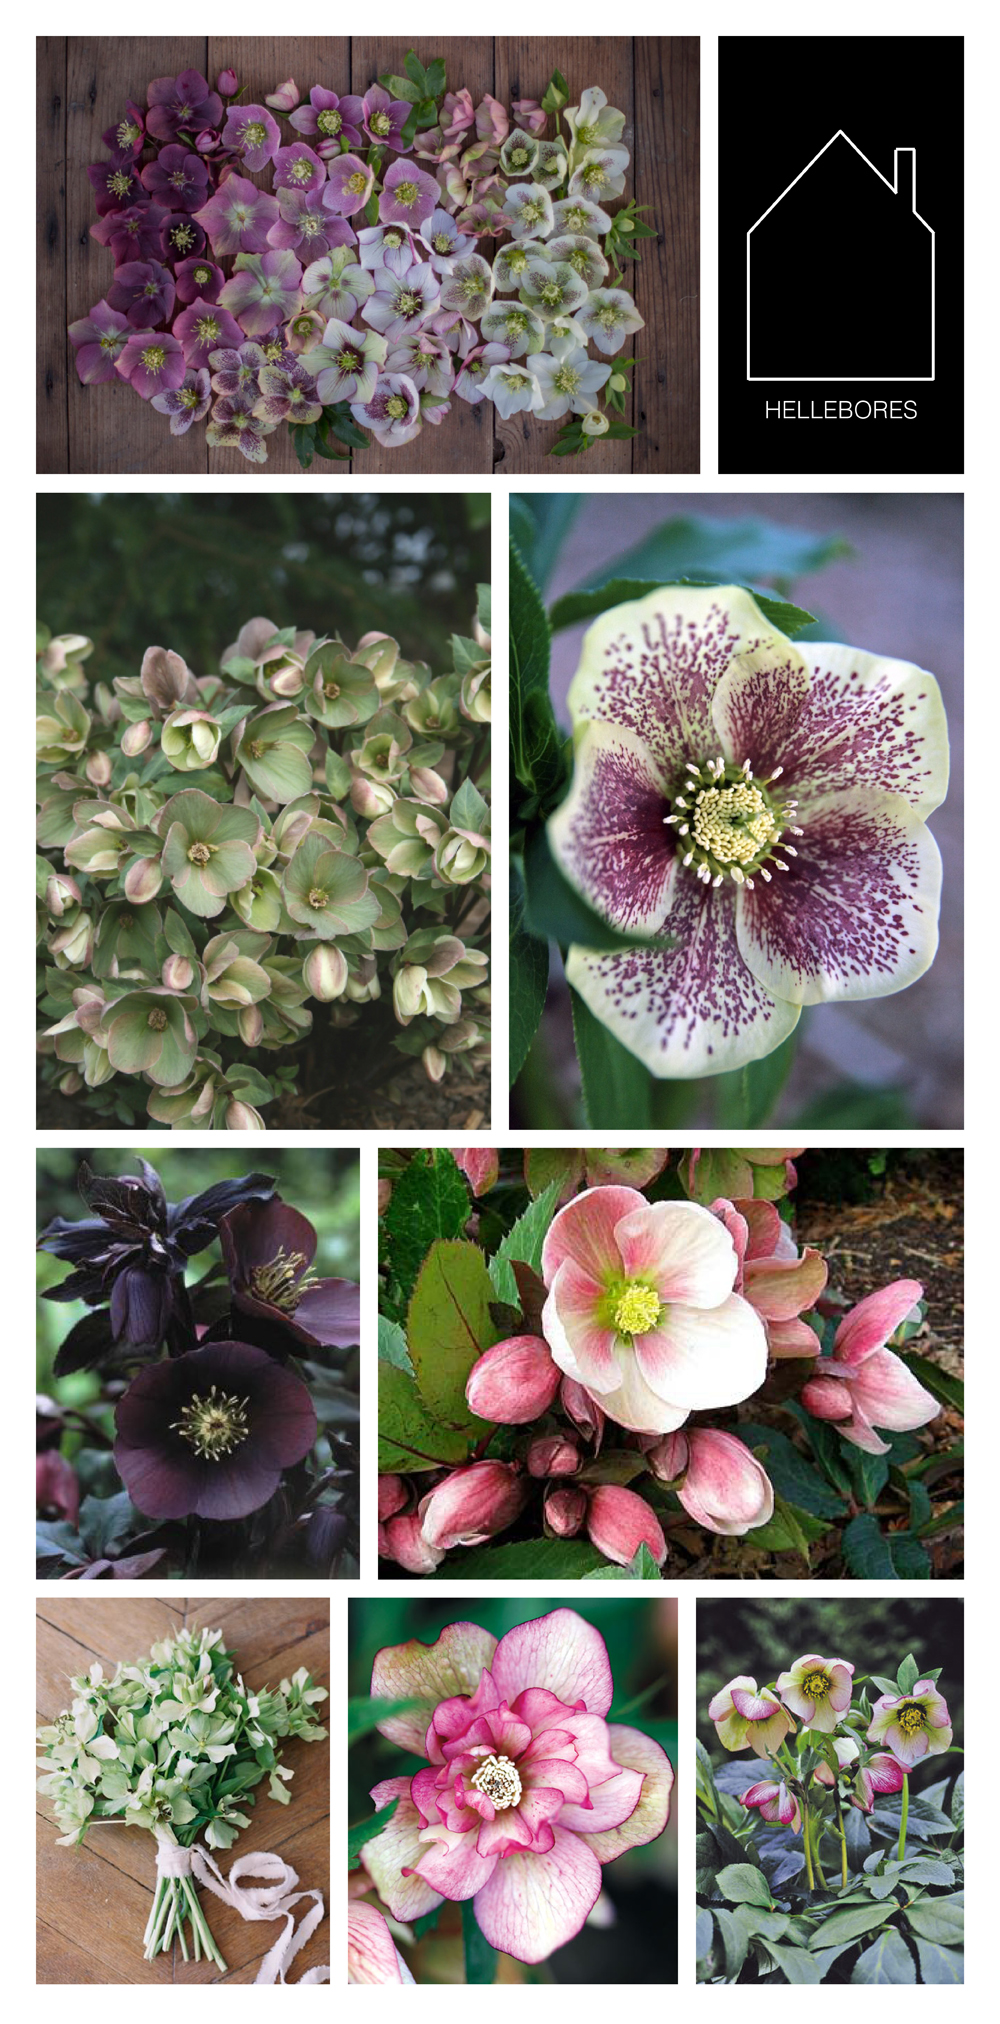 from top left: hellebores display via  Floret  - ivory prince variety via  Plant Delight  - ice follies variety via  Conrad Art Glass & Garden  - blue lady variety via  VonBloem Gardens  - source unknown - ivory prince bouquet via  Once Wed  - peppermint ice via  Canadian Gardening  -picotee lady variety via  Skagit Gardens